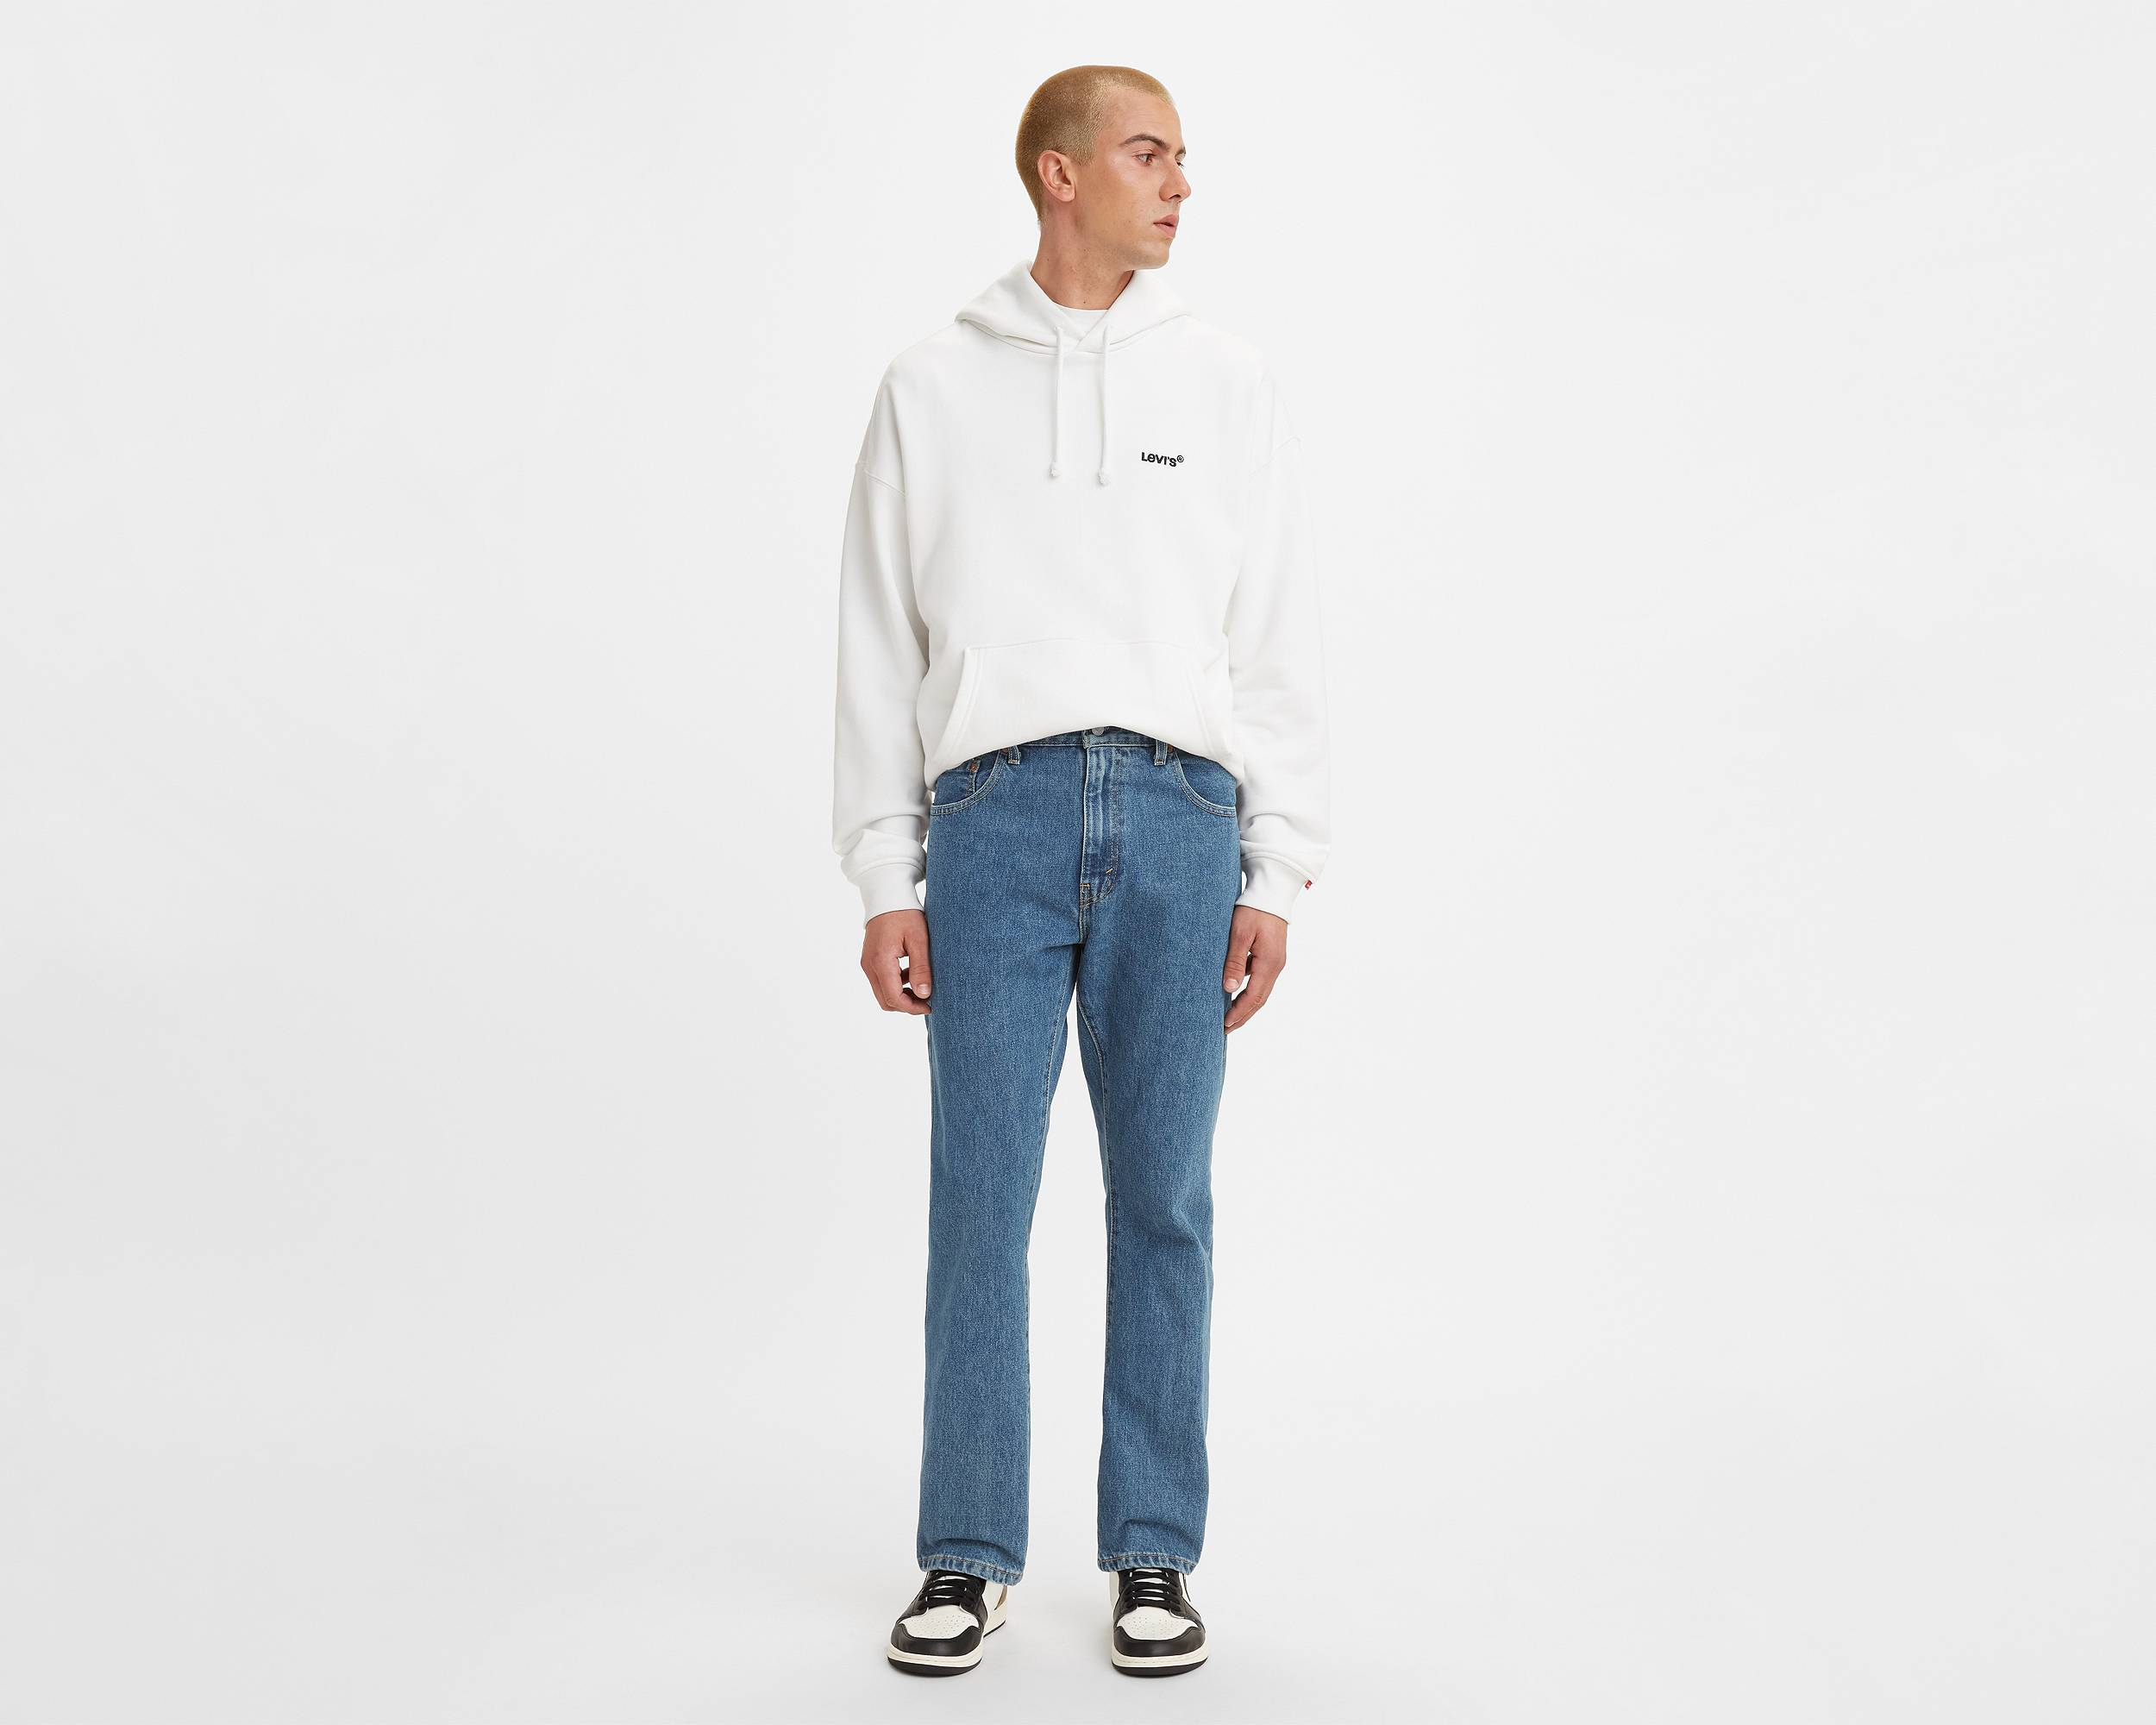 517™ Boot Cut Jeans | Medium Stonewash |Levi's® United States (US)